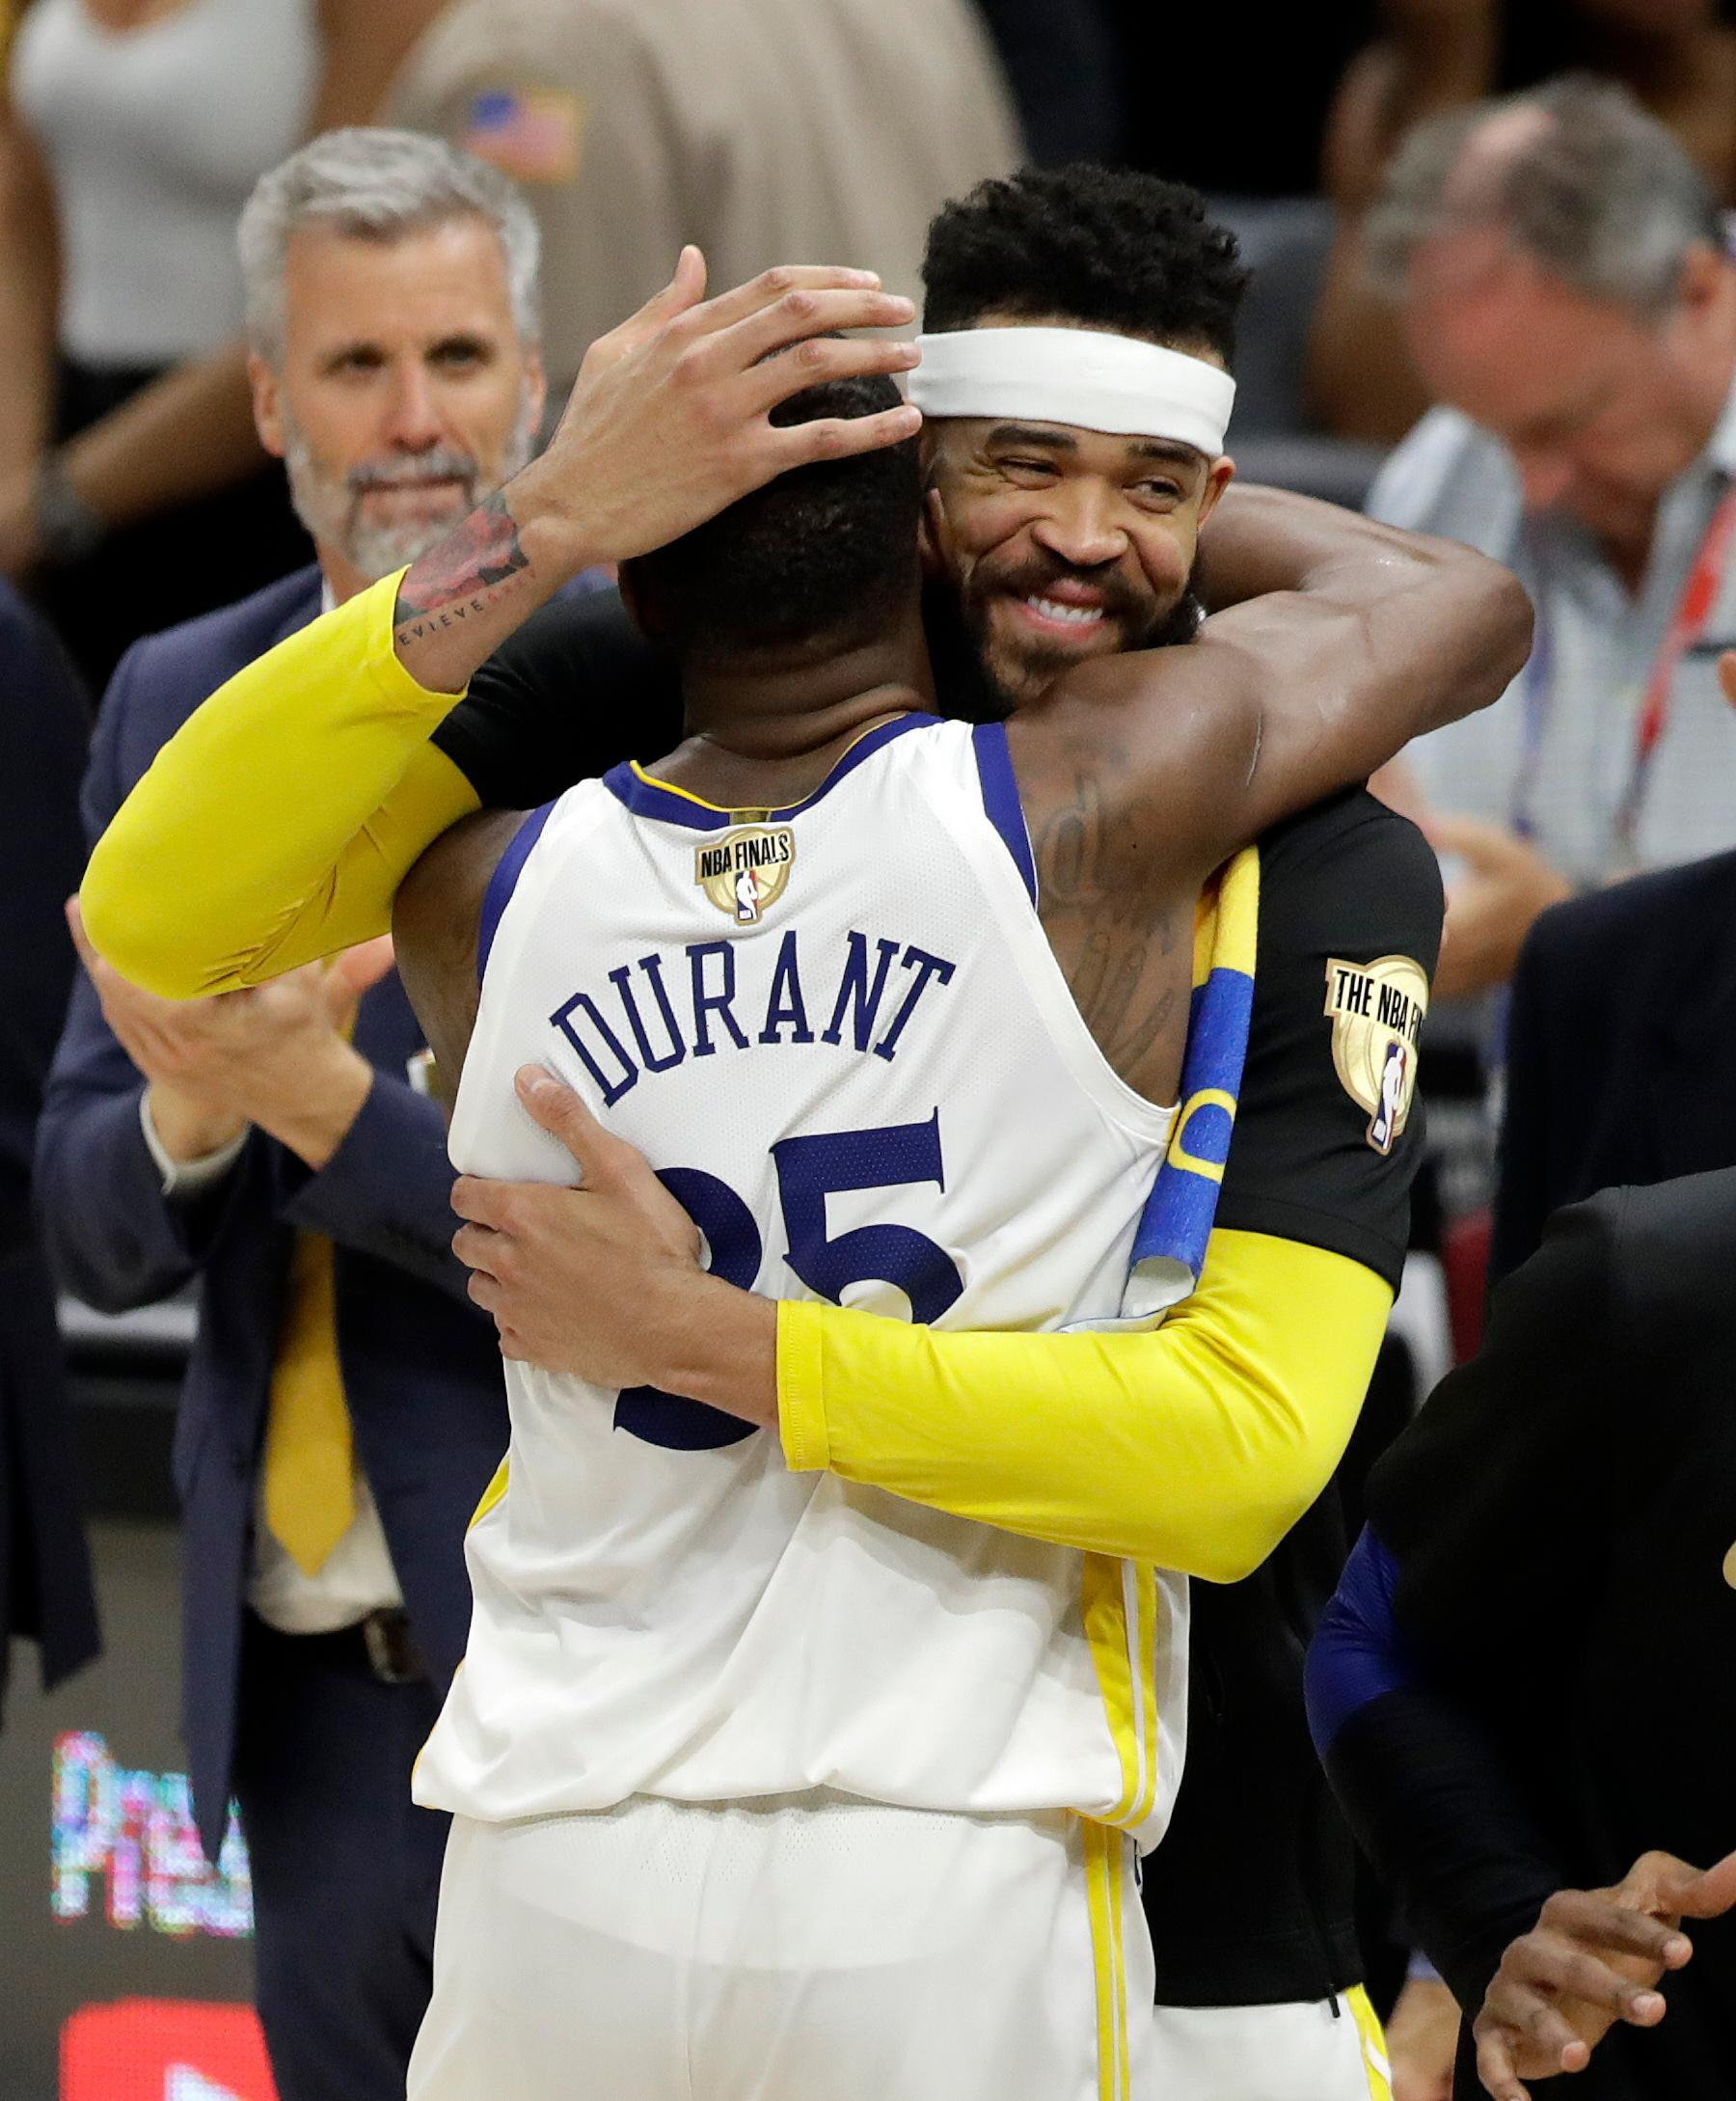 Golden State Warriors' Kevin Durant and JaVale McGee celebrate following Game 4 of basketball's NBA Finals against the Cleveland Cavaliers, Friday, June 8, 2018, in Cleveland. The Warriors defeated the Cavaliers 108-85. (AP Photo/Tony Dejak)